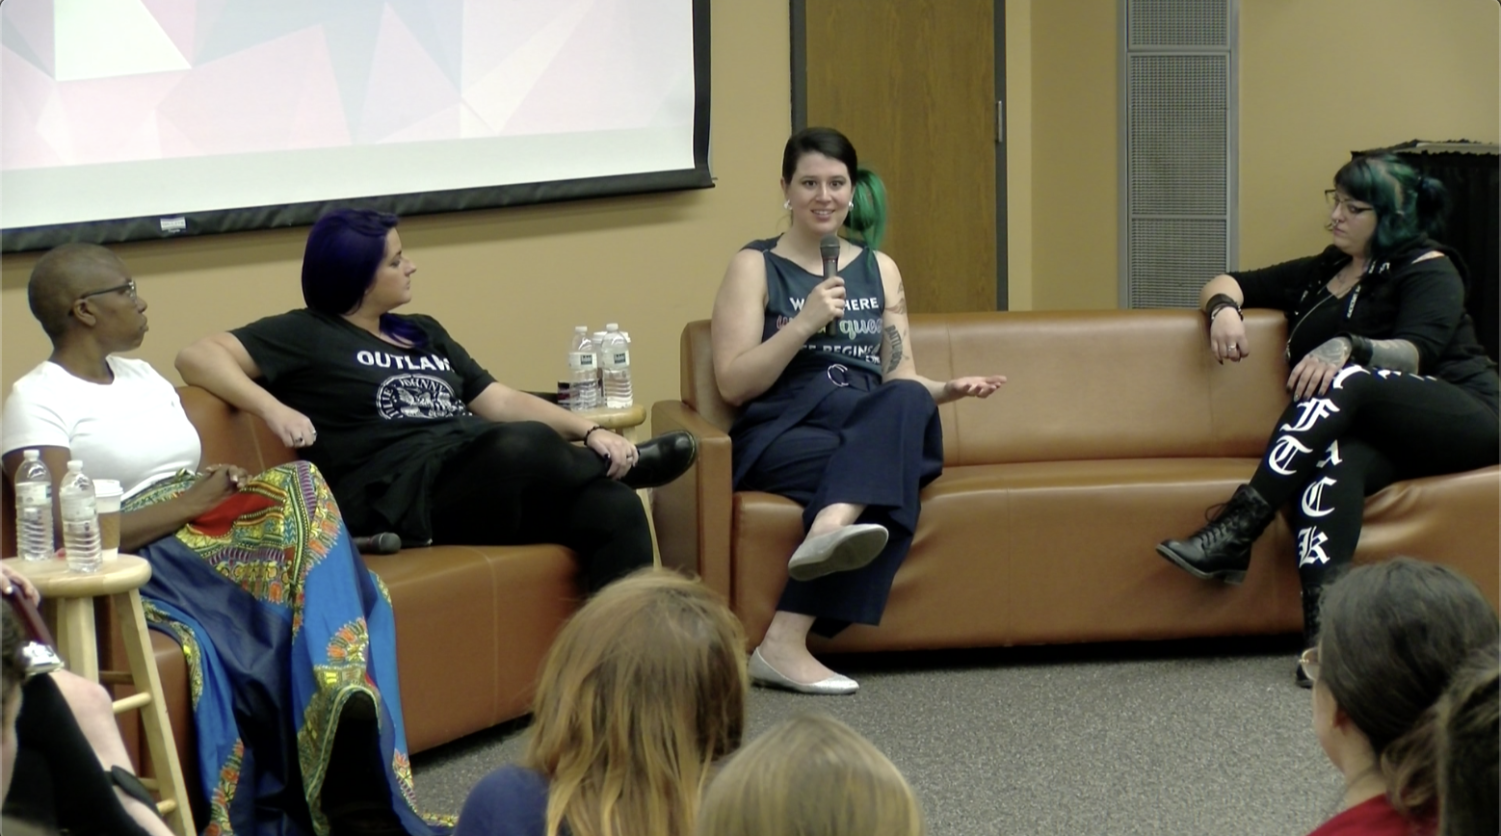 Pictured left to right: Cessilye Smith, Destiny Hernandon-De La Rosa, Aimee Murphy and Albany Rose talk about the different paths that led them to the anti-abortion movement. Photo credit: Christian Willbern